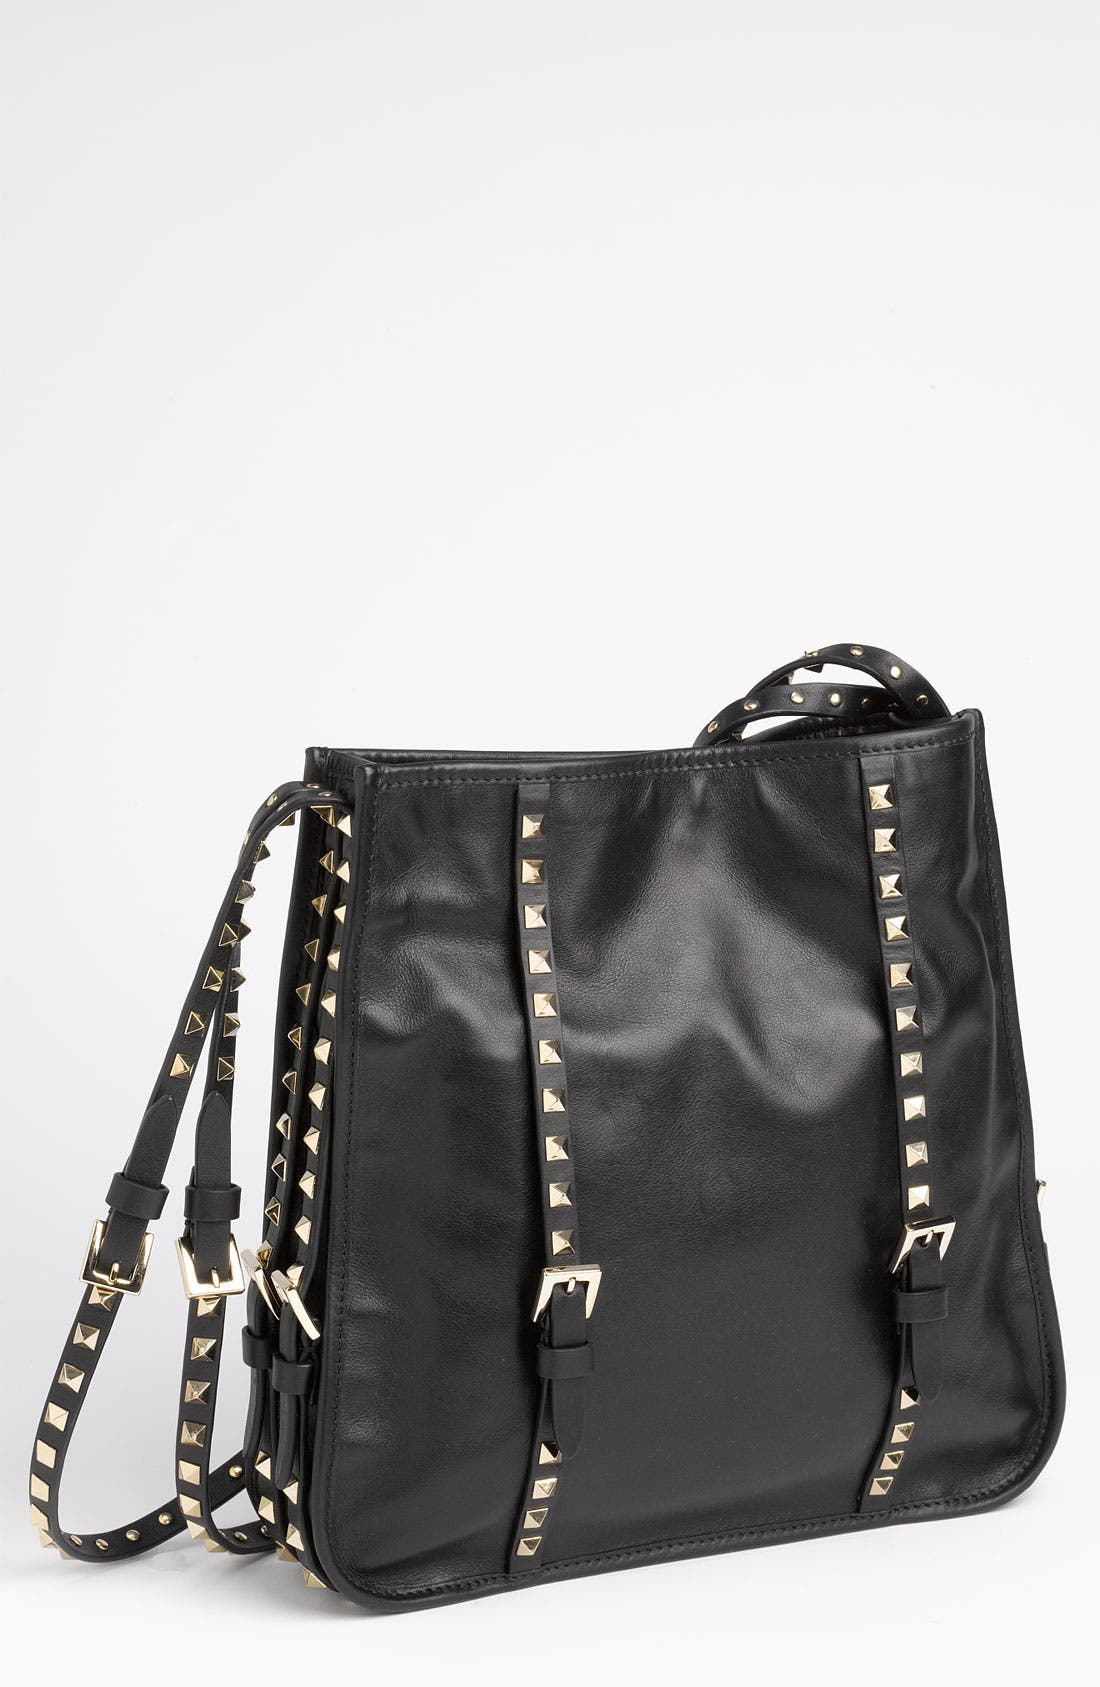 Main Image - Valentino 'Small' Leather Shopper Tote